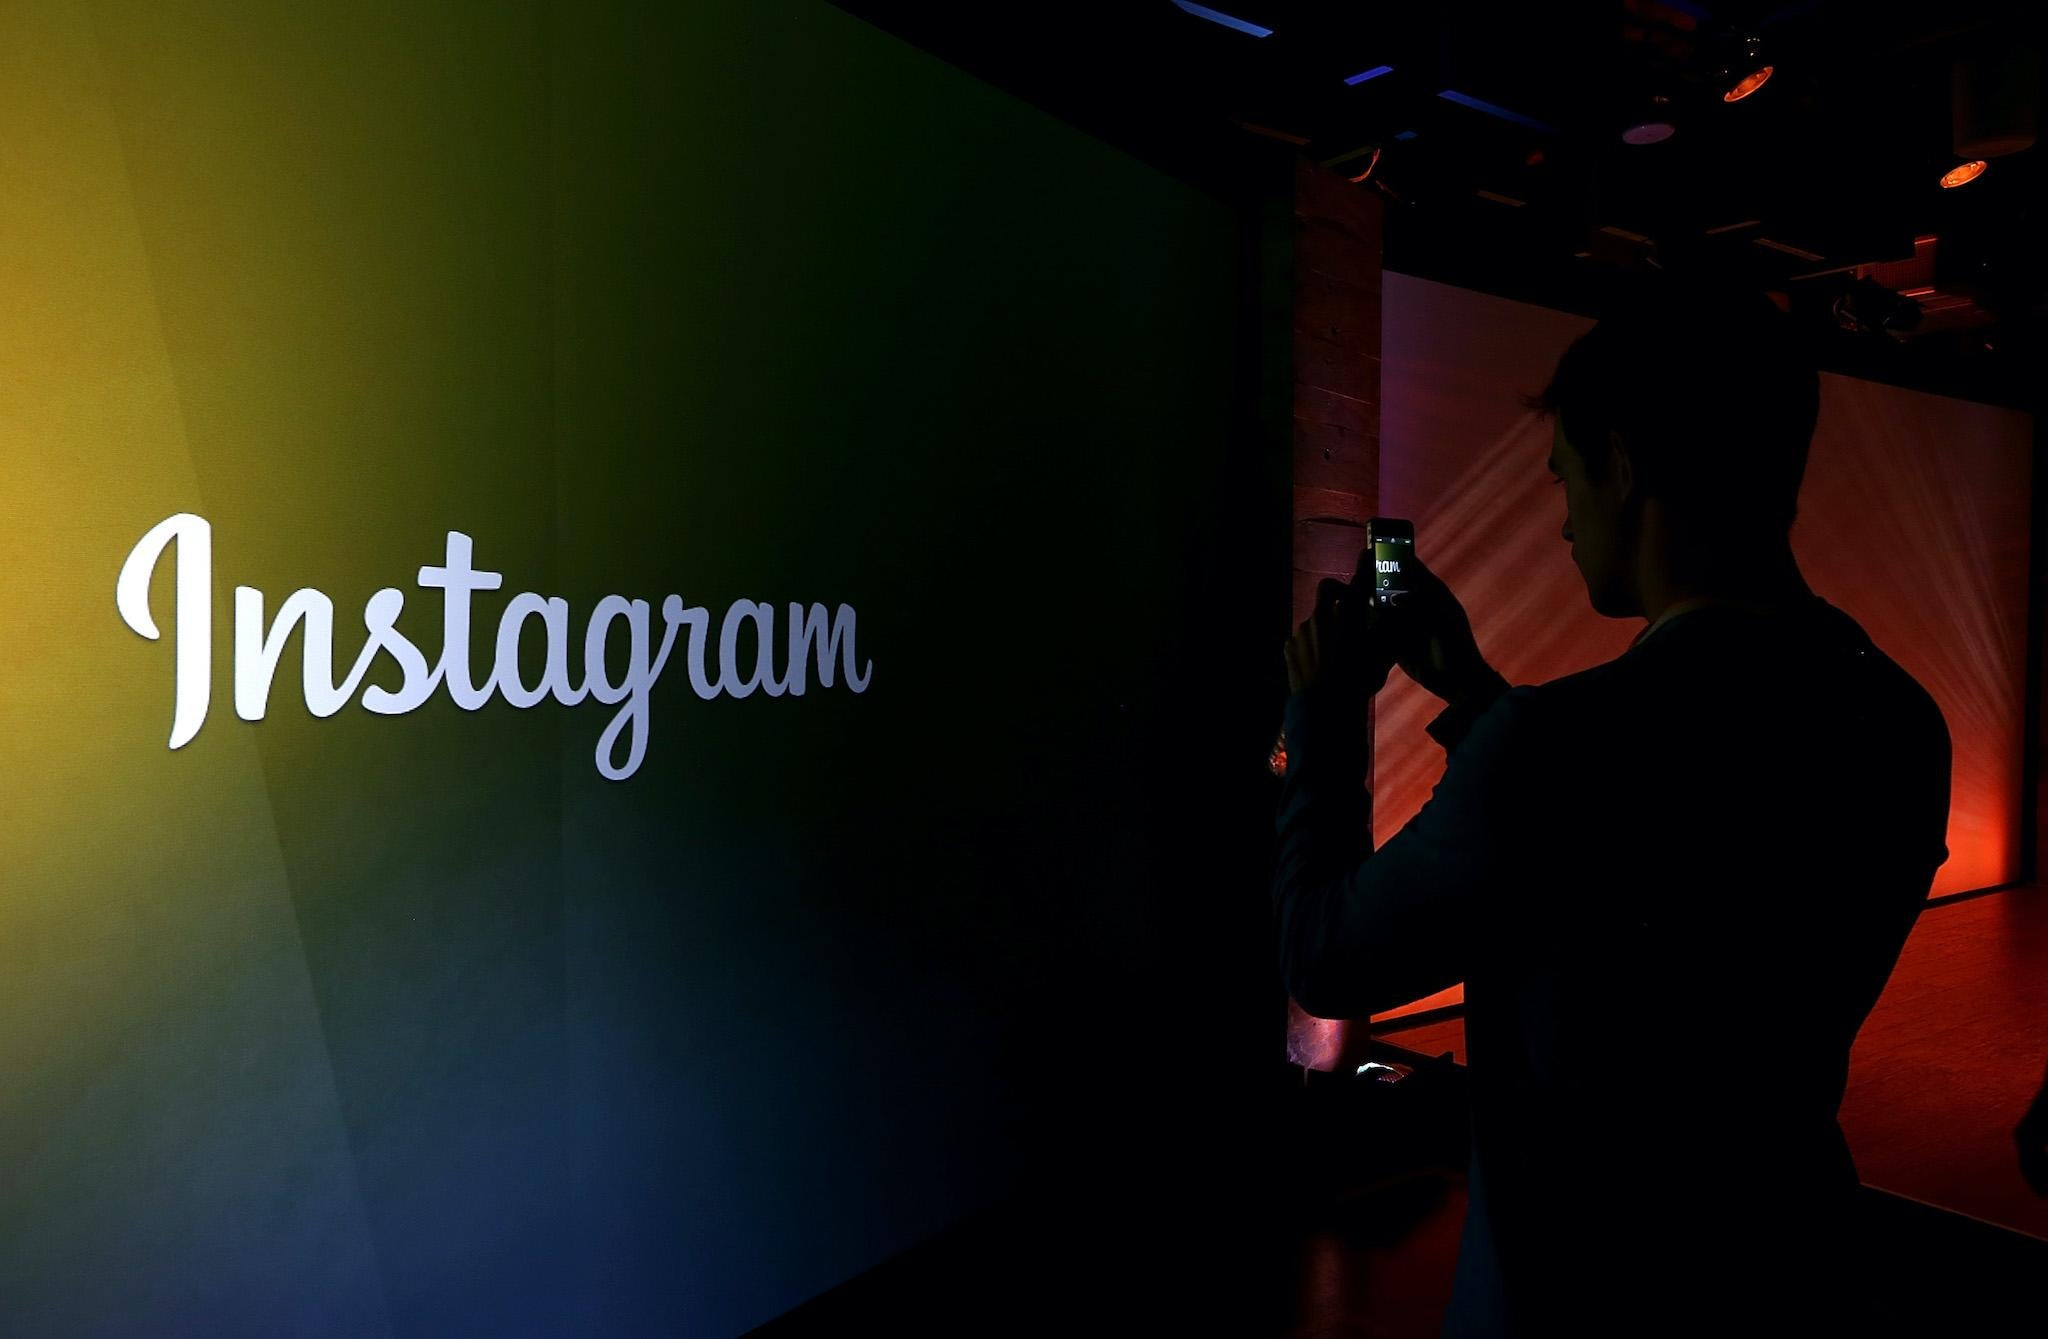 Instagram Update Brings Food Orders So You Can Buy Dinner Straight From Stories The Independent